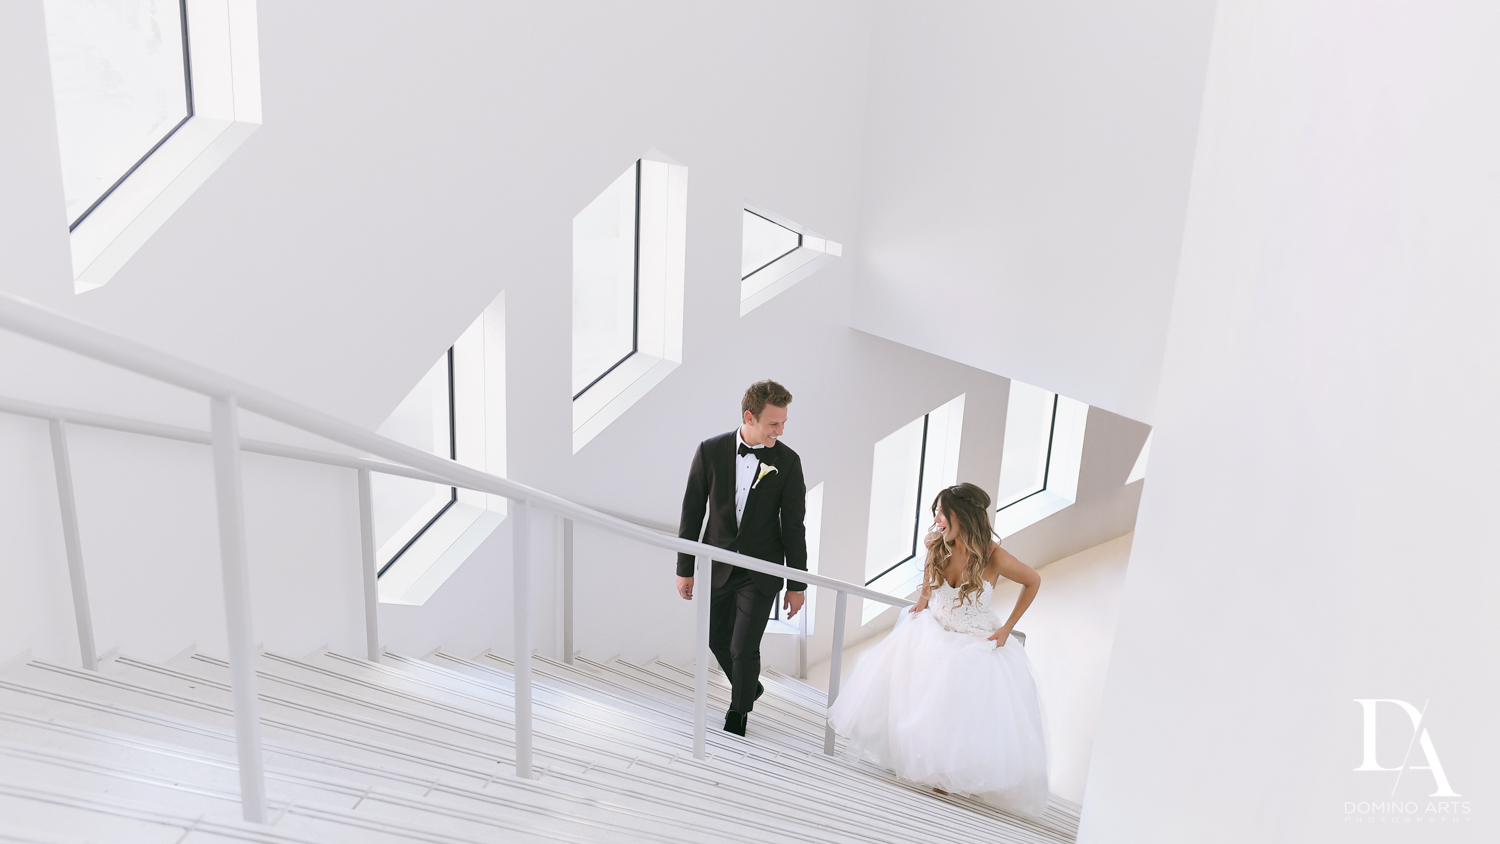 Luxury destination wedding pictures of bride and groom at Faena Hotel Miami Beach